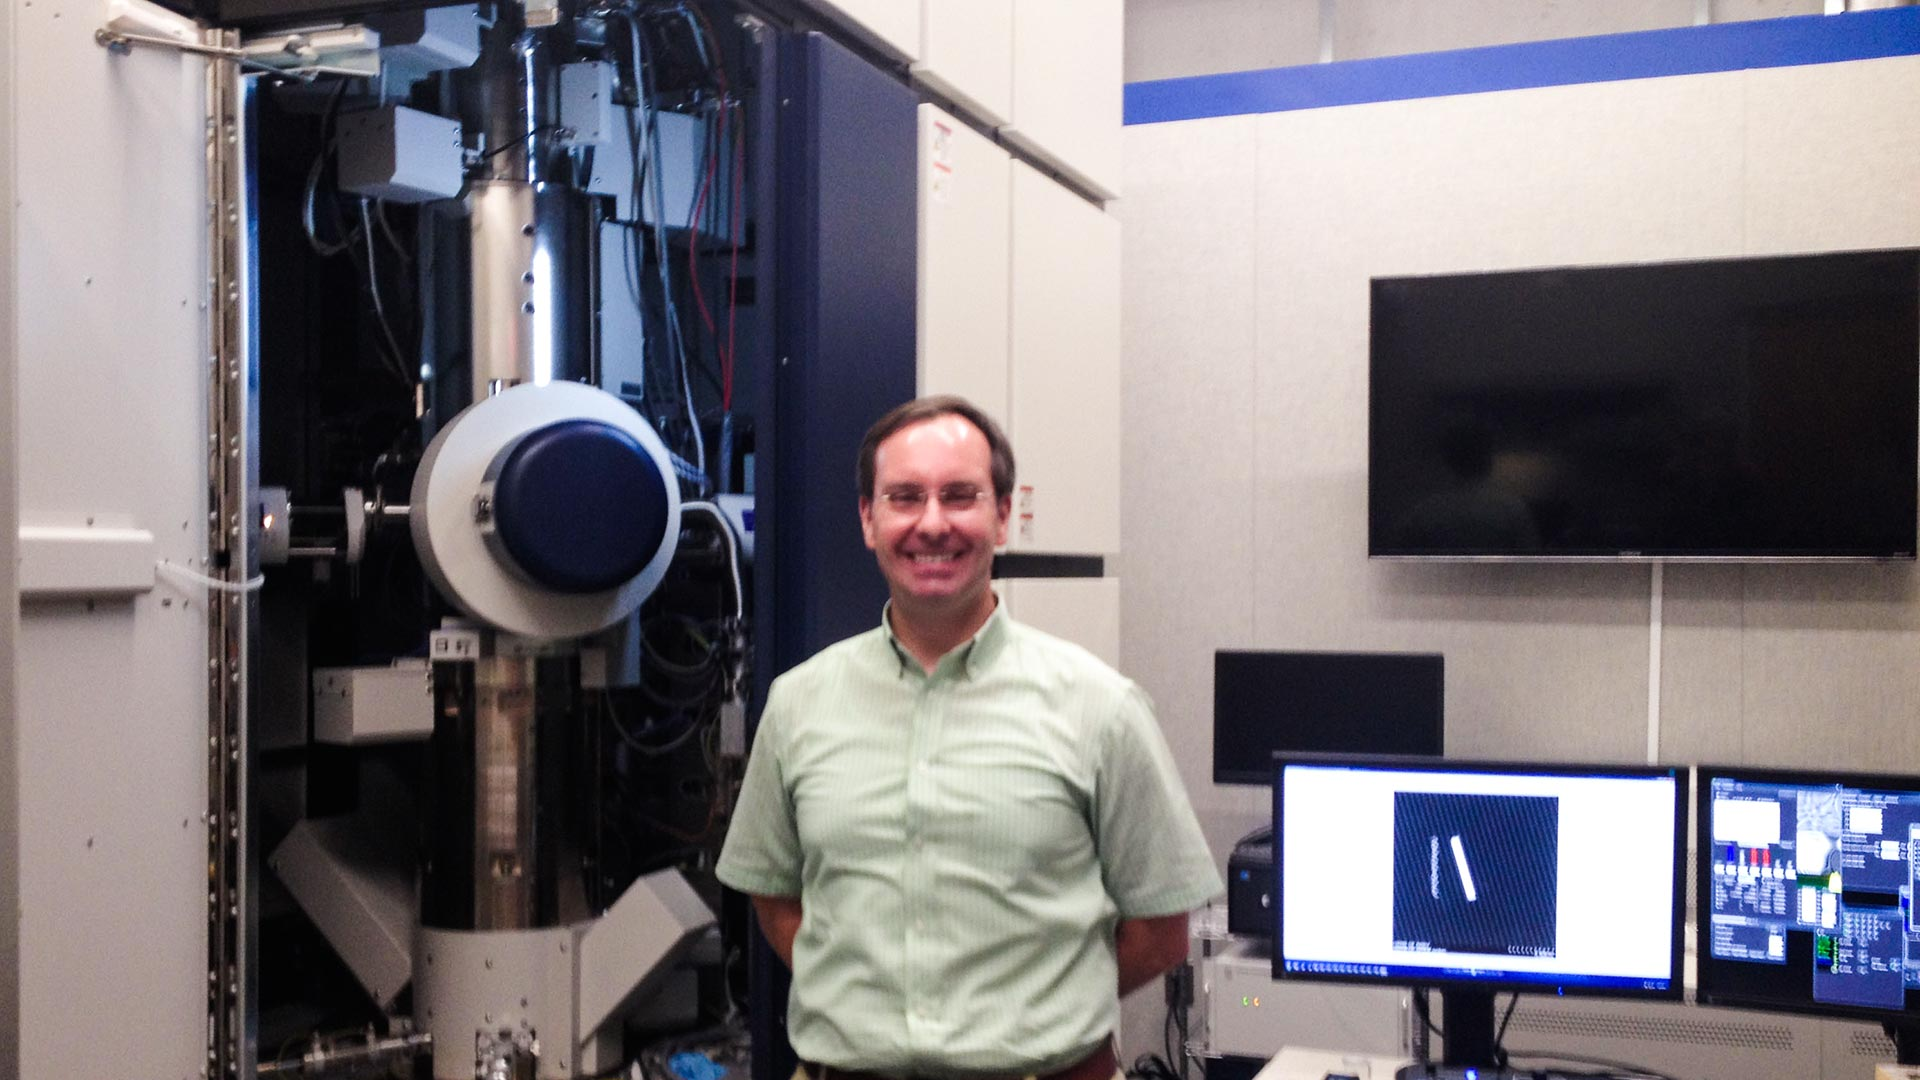 Planetary scientist Tom Zega with the UA Lunar and Planetary Laboratory's transmission electronic microscope which will analyze dirt samples returned from the asteroid Bennu in 2023. The instrument has serial number 1.